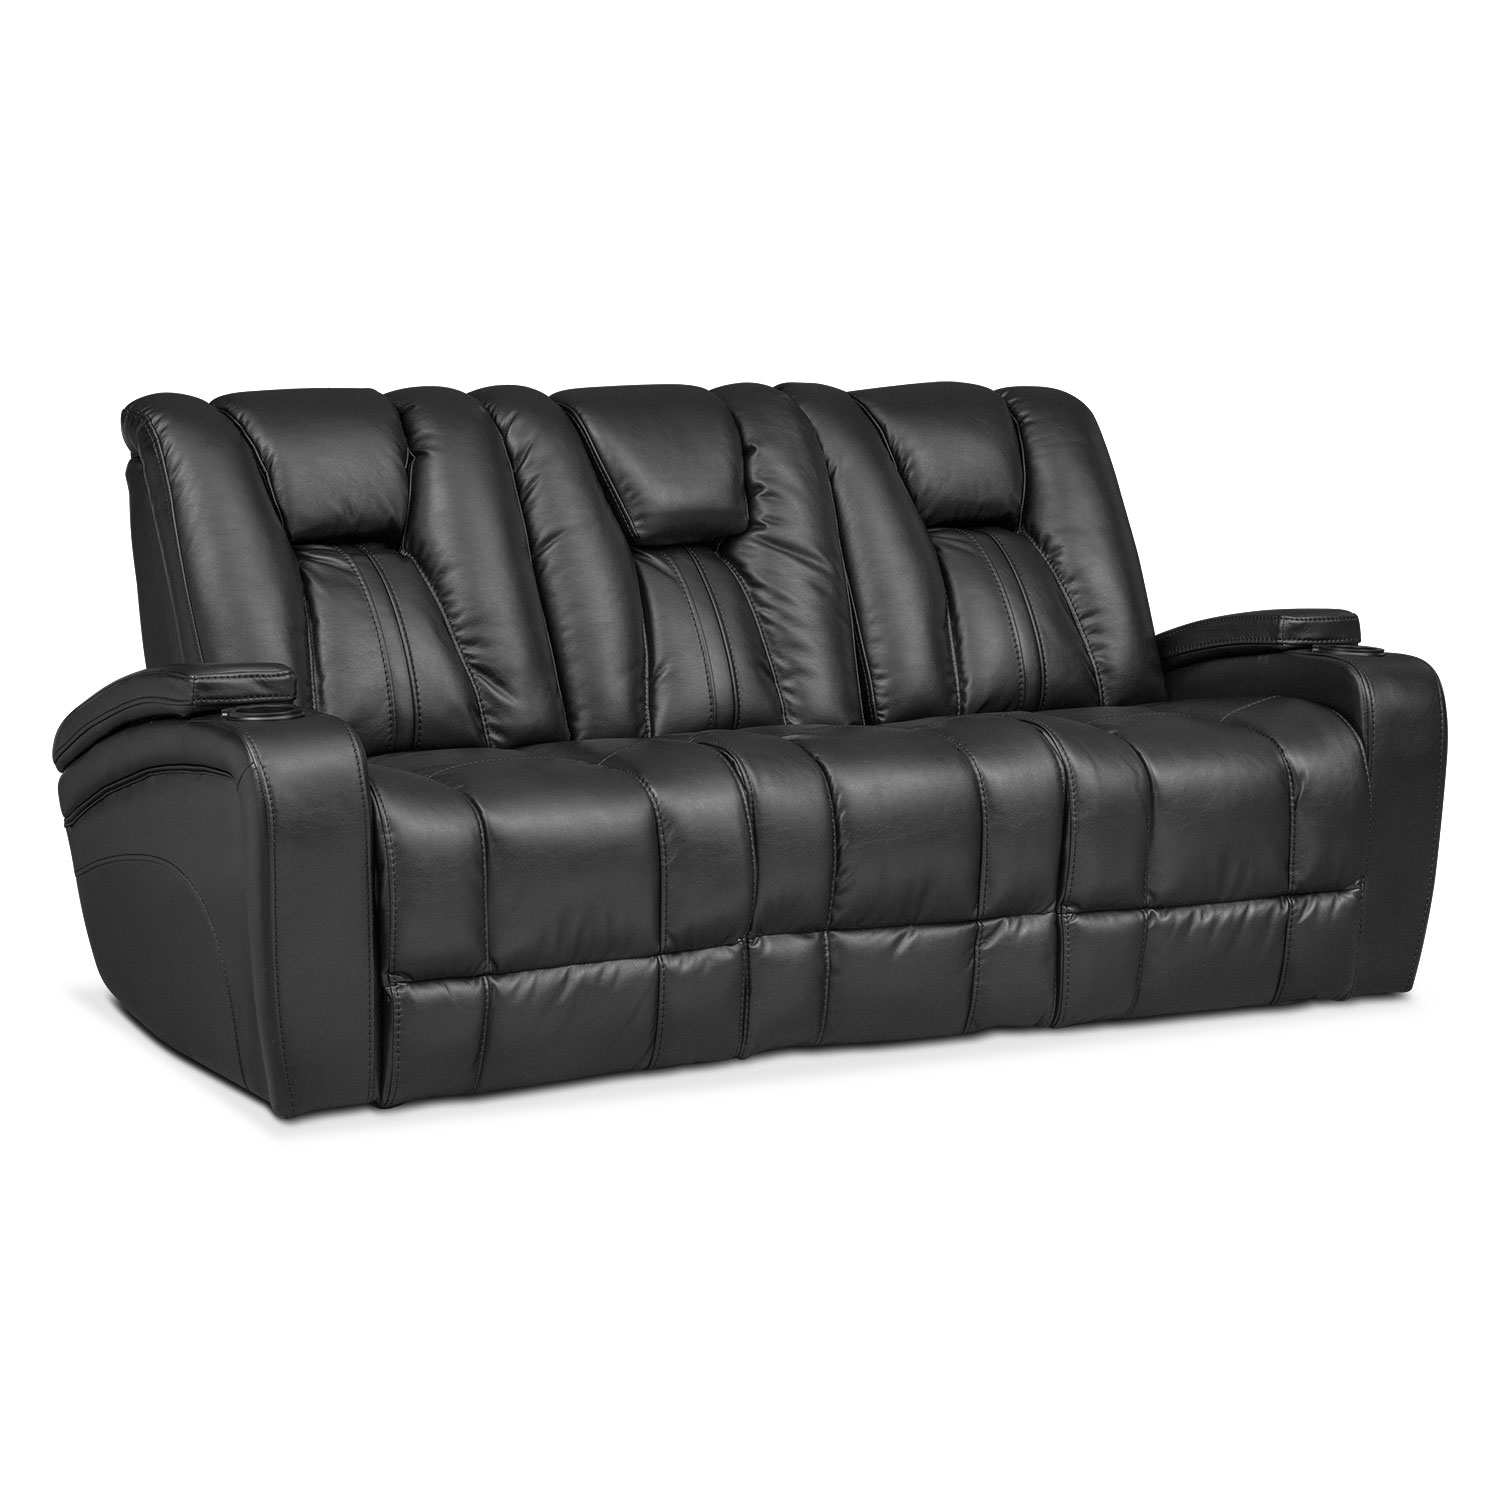 Pulsar Dual Power Reclining Sofa Black Value City